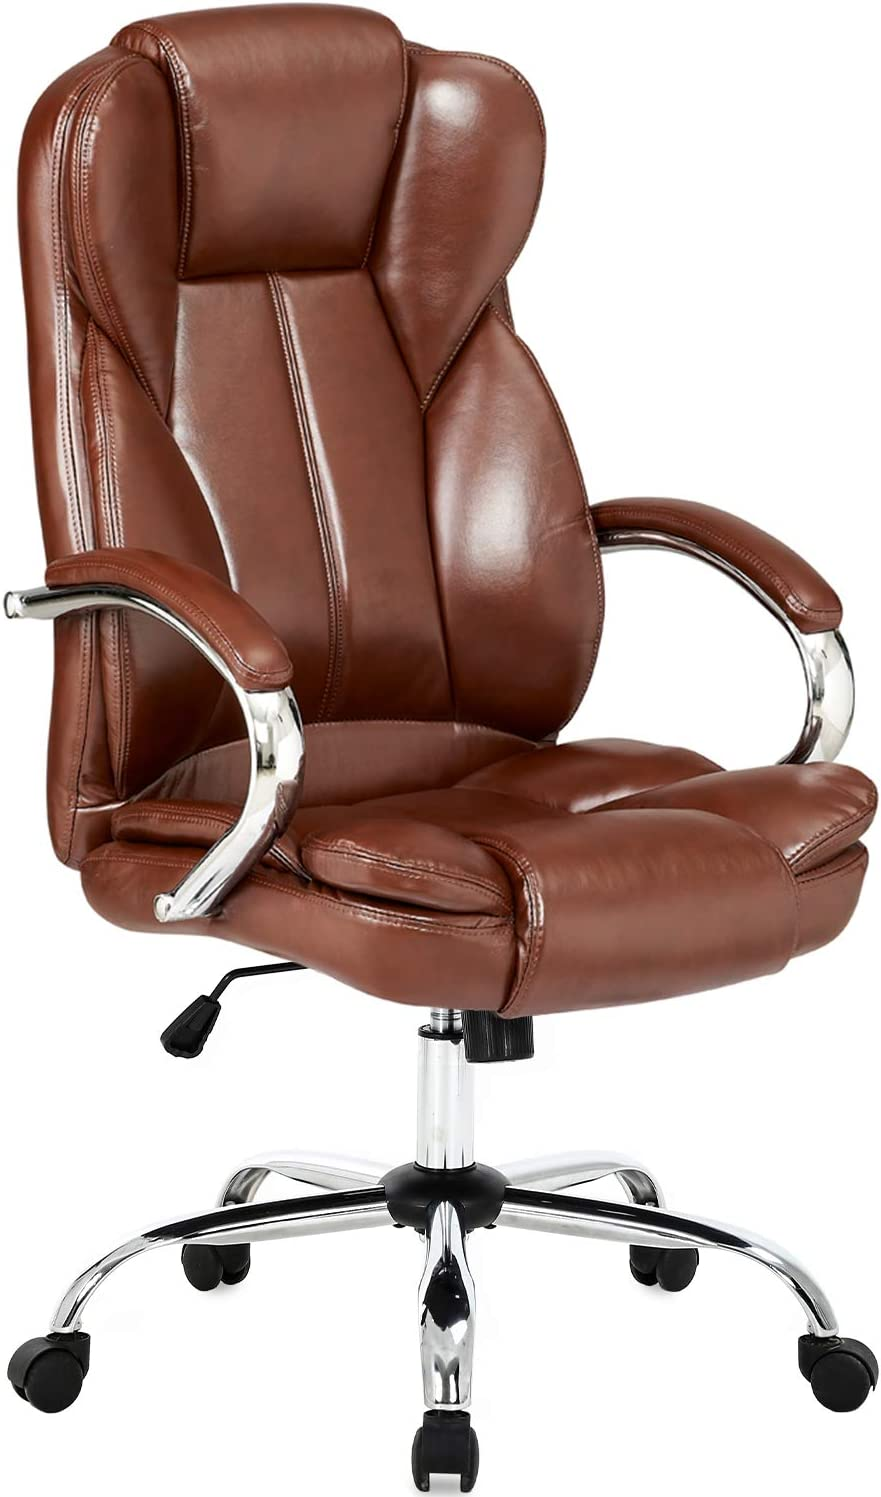 Office Chair Desk Chair Computer Chair with Lumbar Support Arms Headrest High Back Executive Task Rolling Swivel PU Leather Adjustable Ergonomic Chair for Adults Girls Women(Brown)